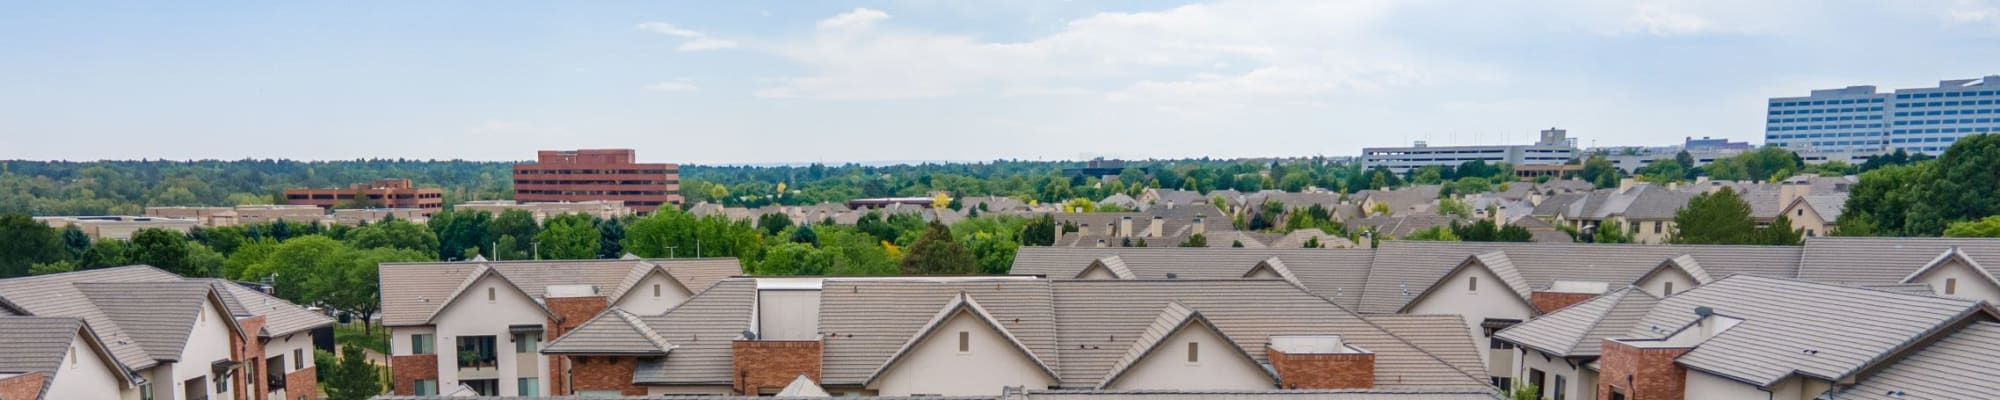 Reviews of The Parc at Greenwood Village in Greenwood Village, Colorado